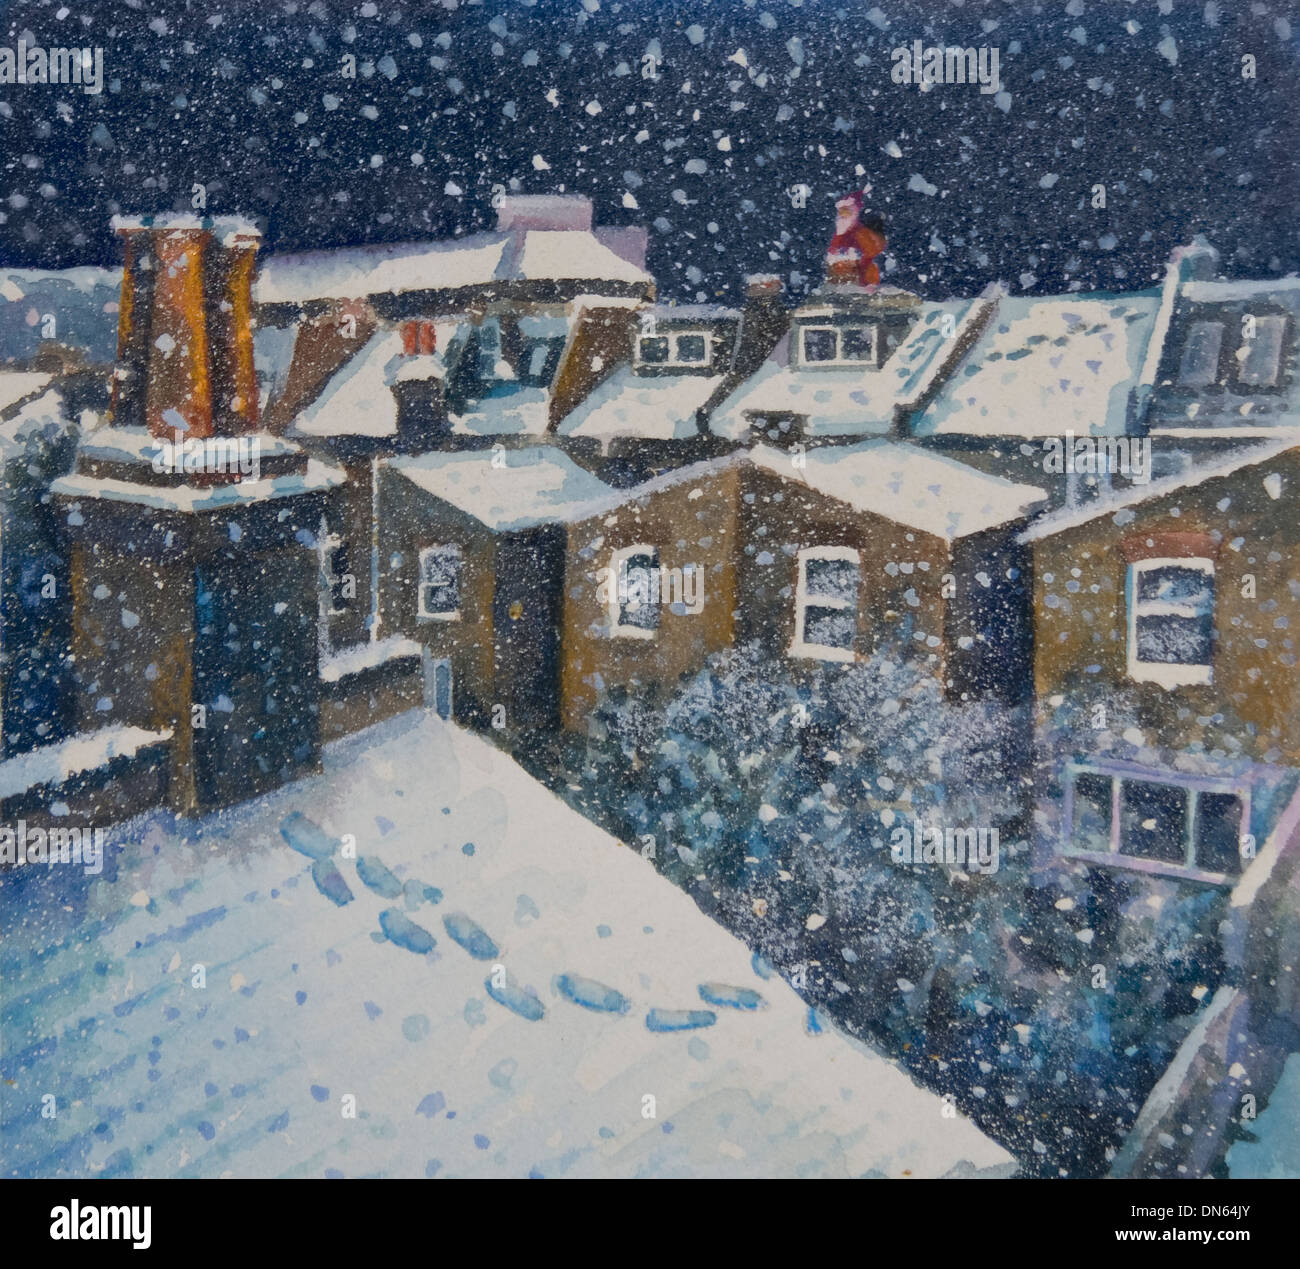 Illustration Of Snowy Rooftop Scene In Fulham London With